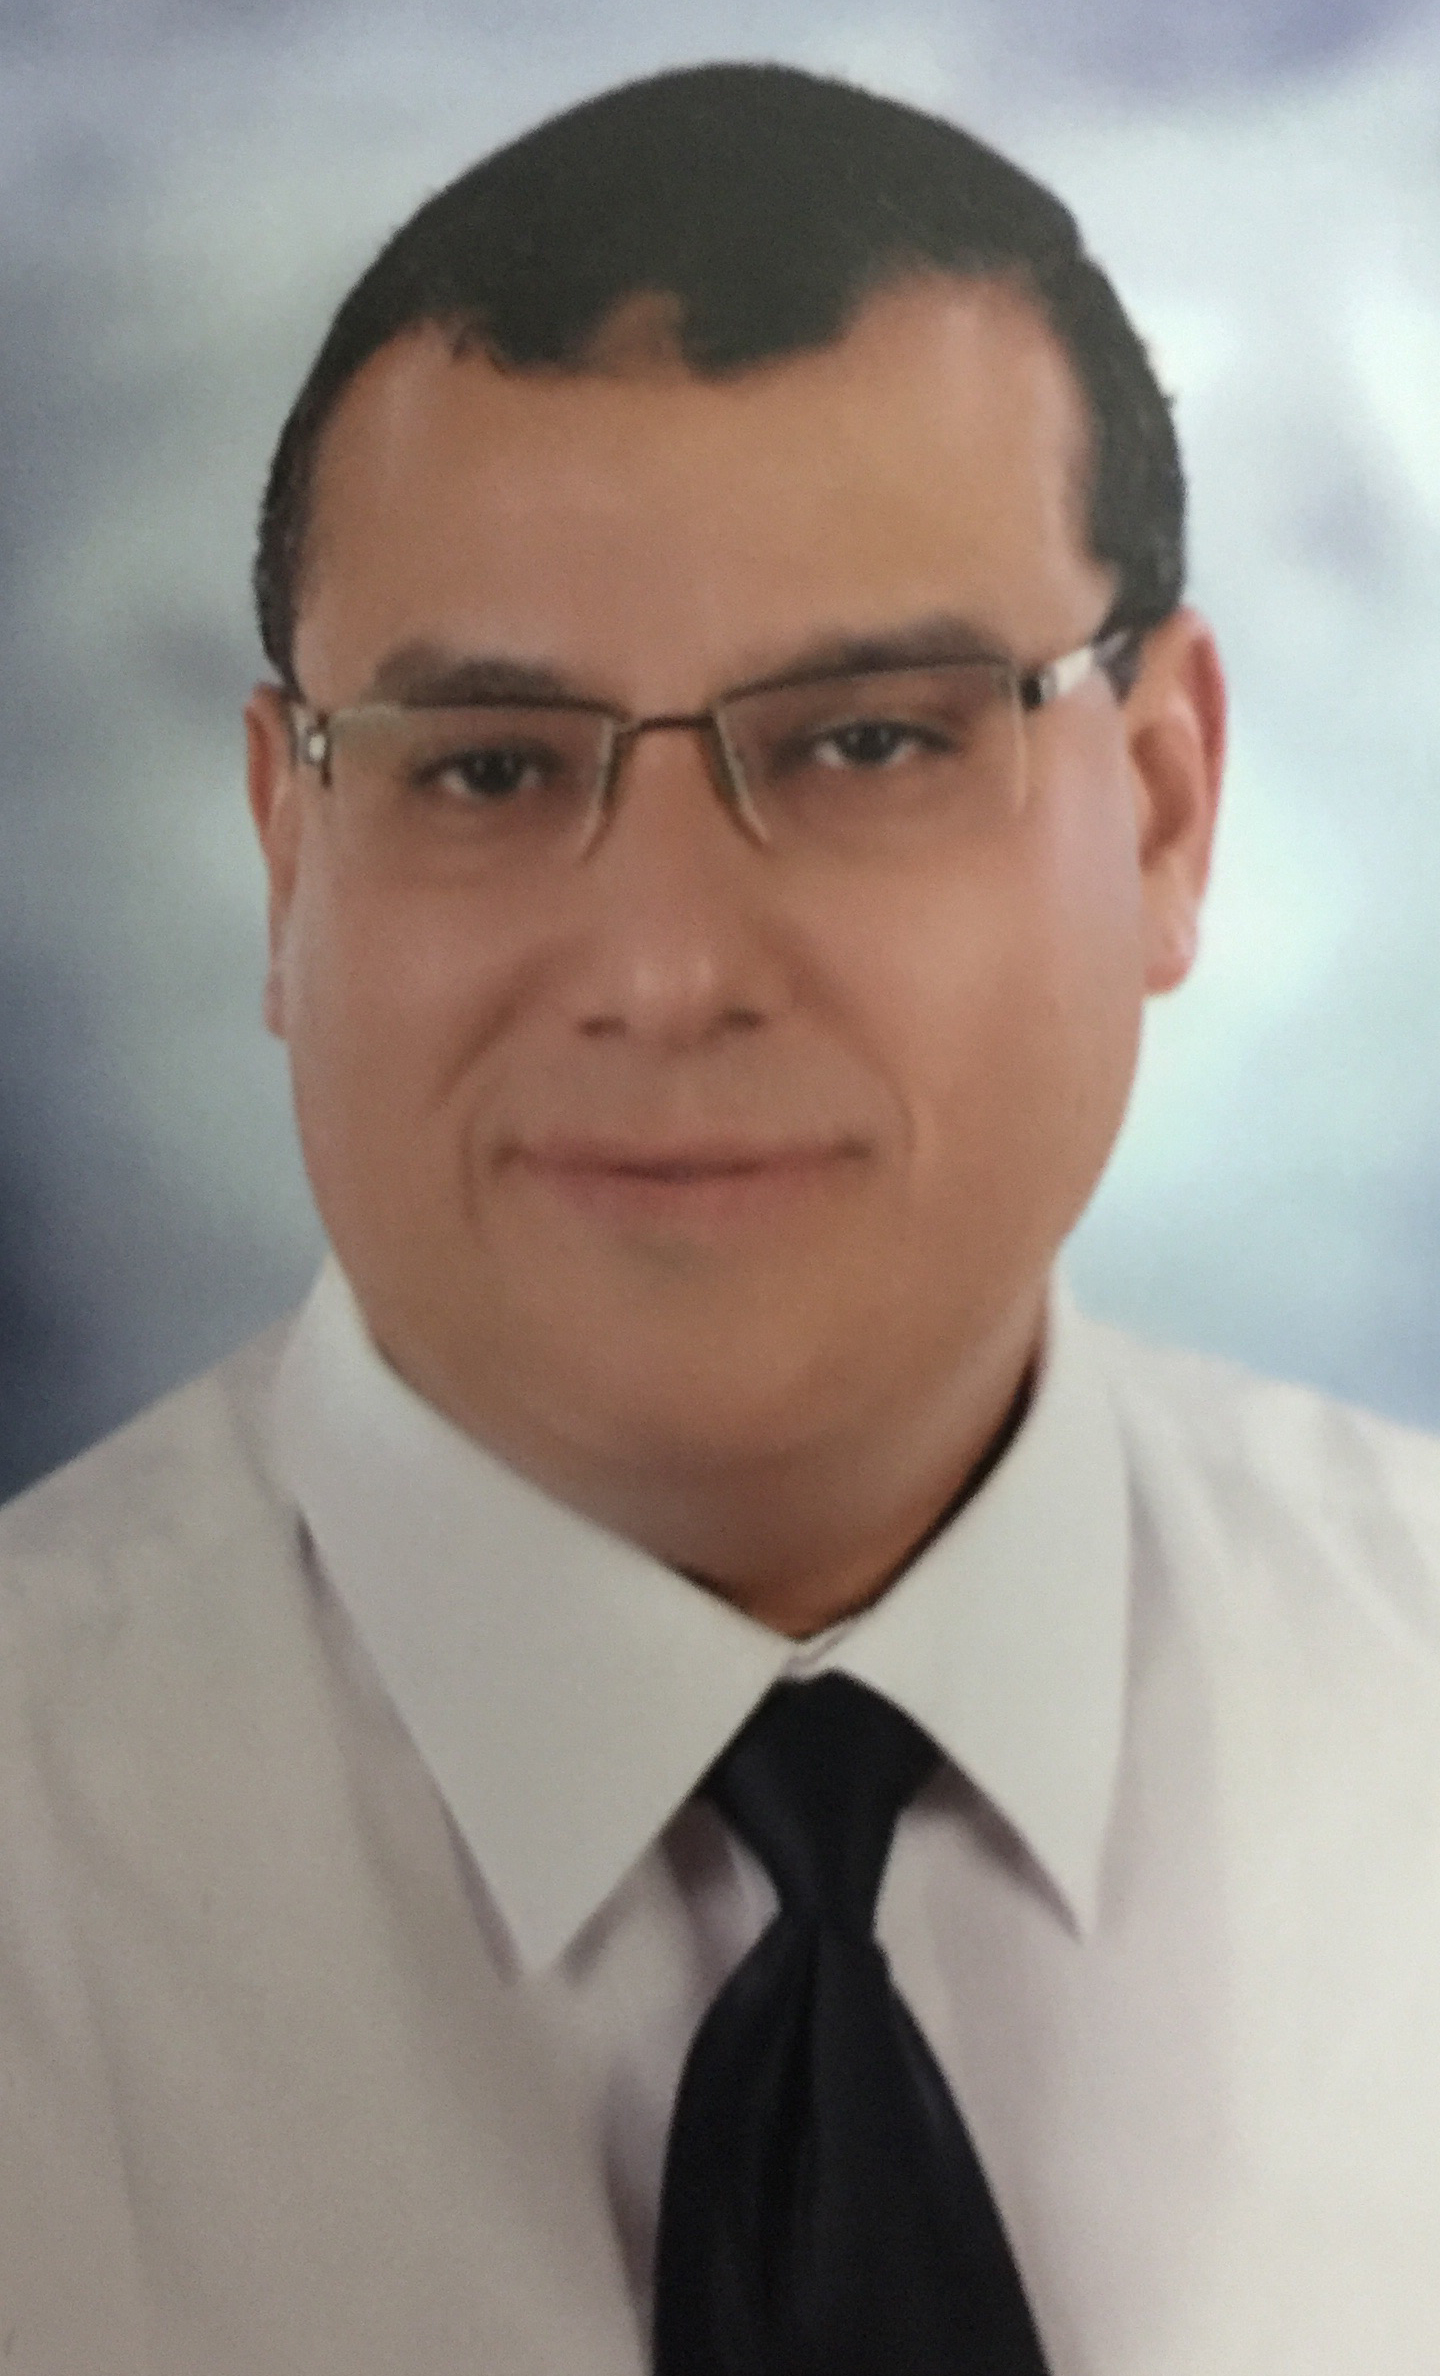 faculty guests cardioalex consultant none invasive cardiology at imc international medical center in jeddah